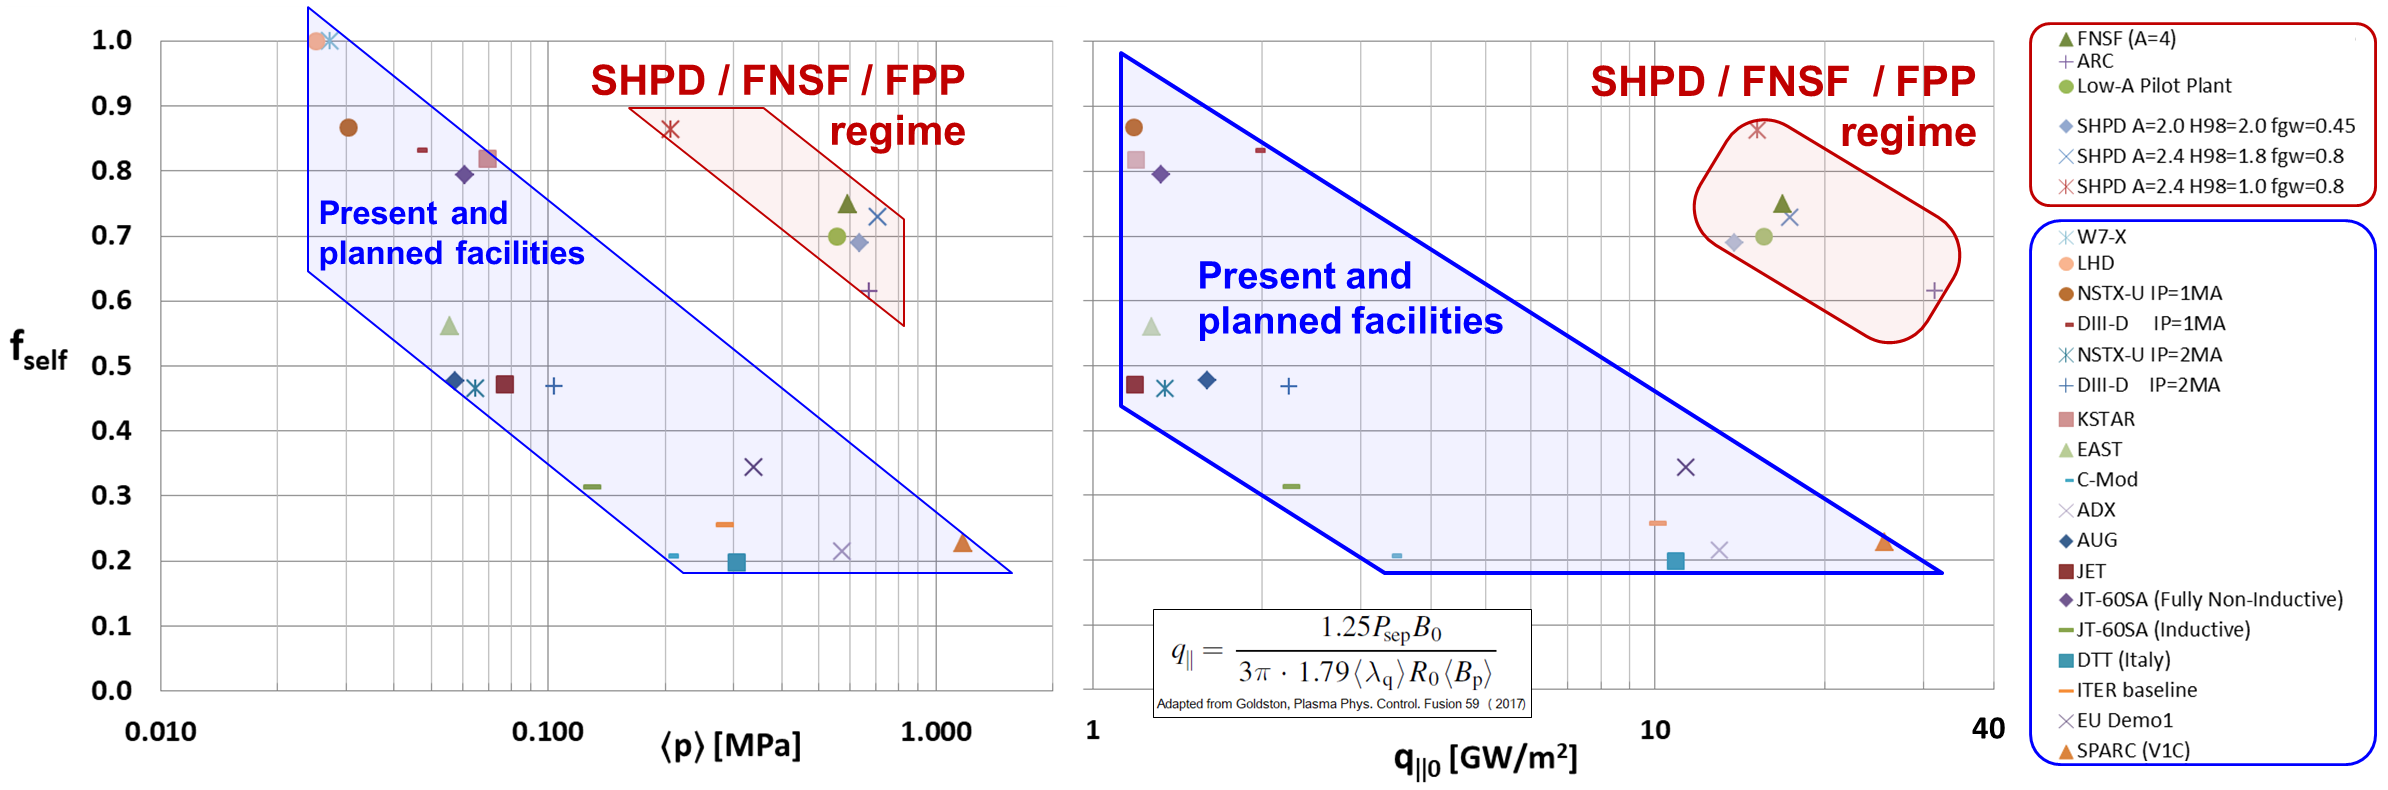 (Left) Self-driven/bootstrap current fraction f$_{self}$ versus volume-average plasma pressure and (right) f$_{self}$ versus Scrape-Off Layer (SOL) parallel heat flux parameter q$_{||0}$ adapted from Goldston (1).